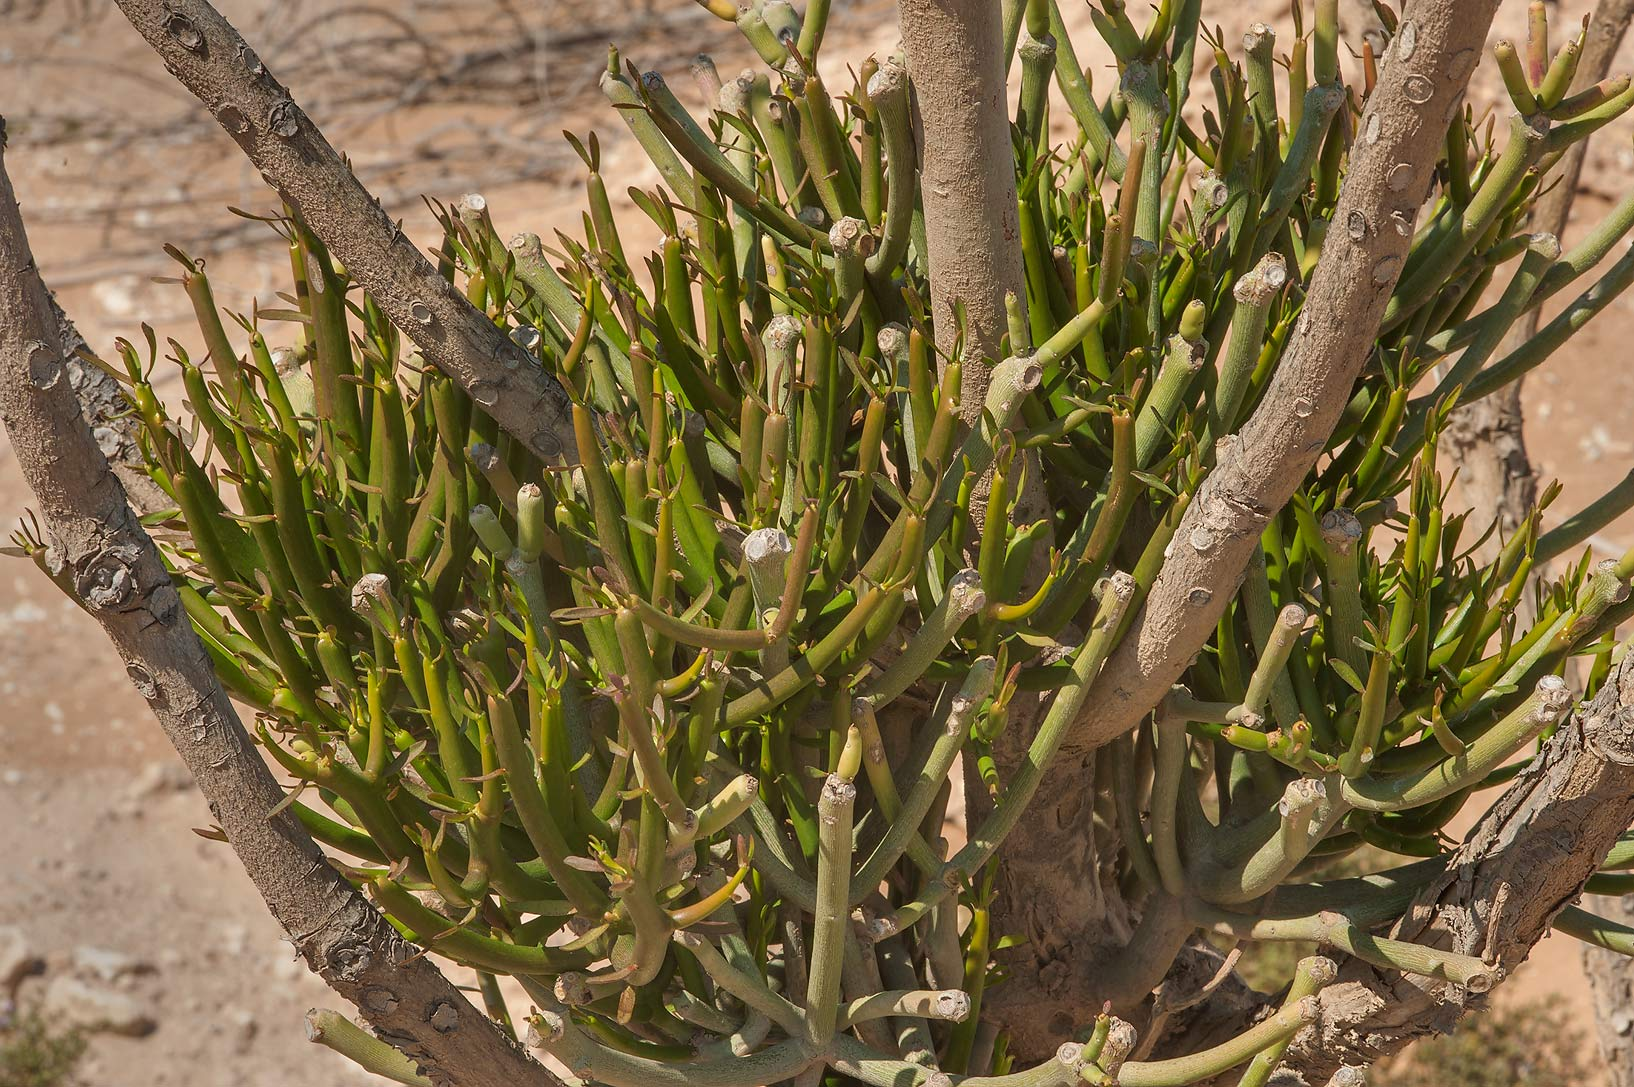 Shoots of Pencil tree (Euphorbia tirucalli) in...Ras Laffan farms. North-eastern Qatar